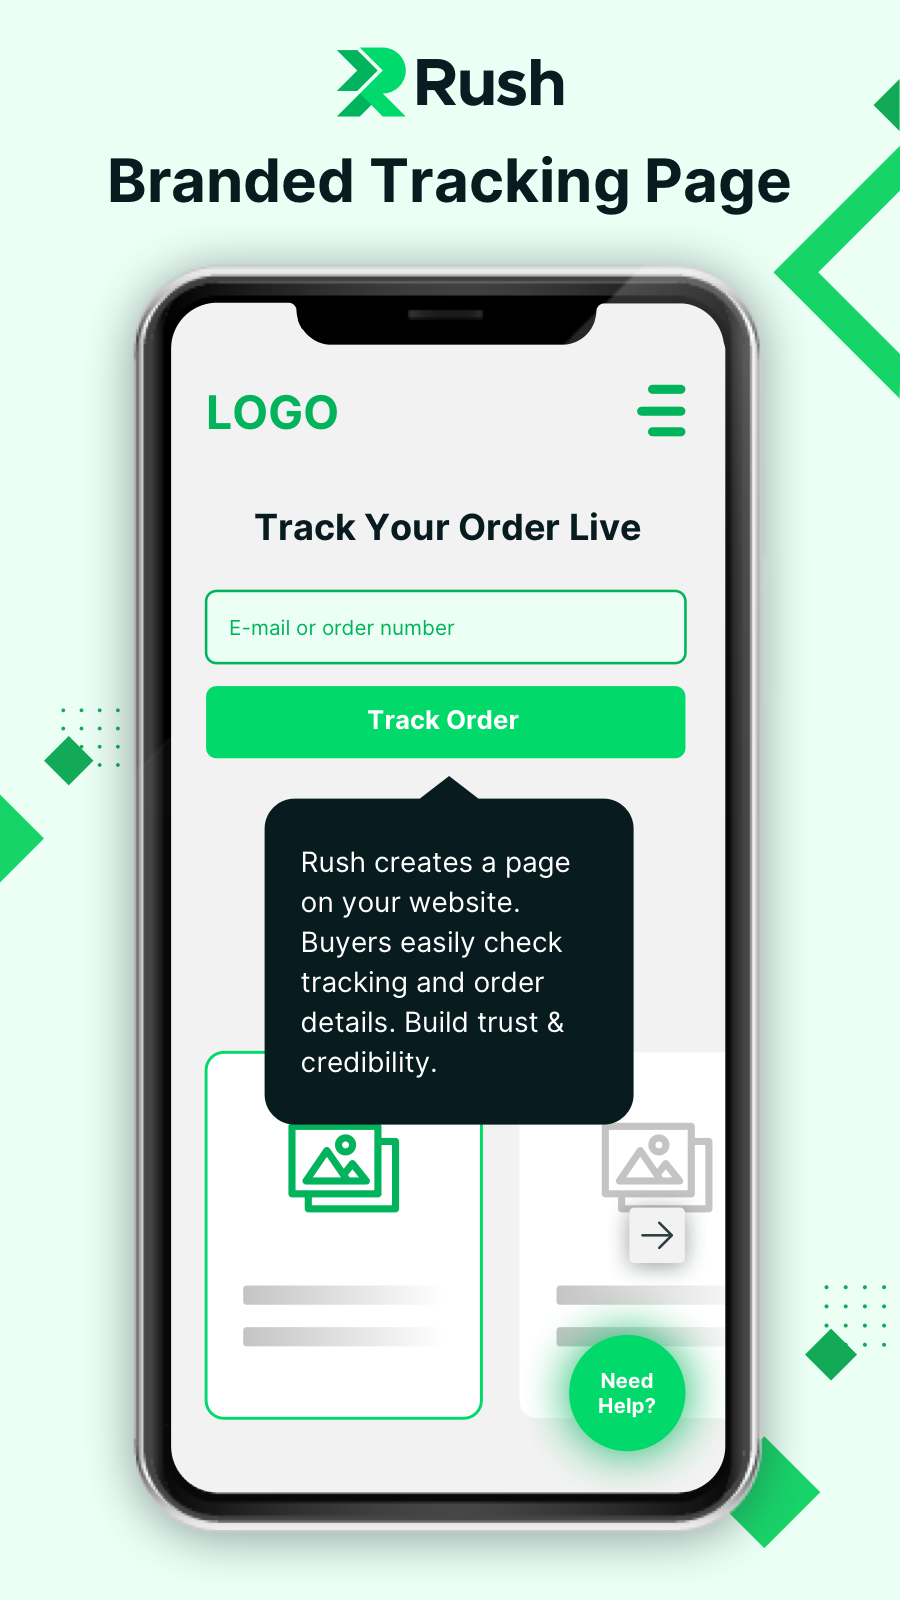 Custom Branded Tracking Page